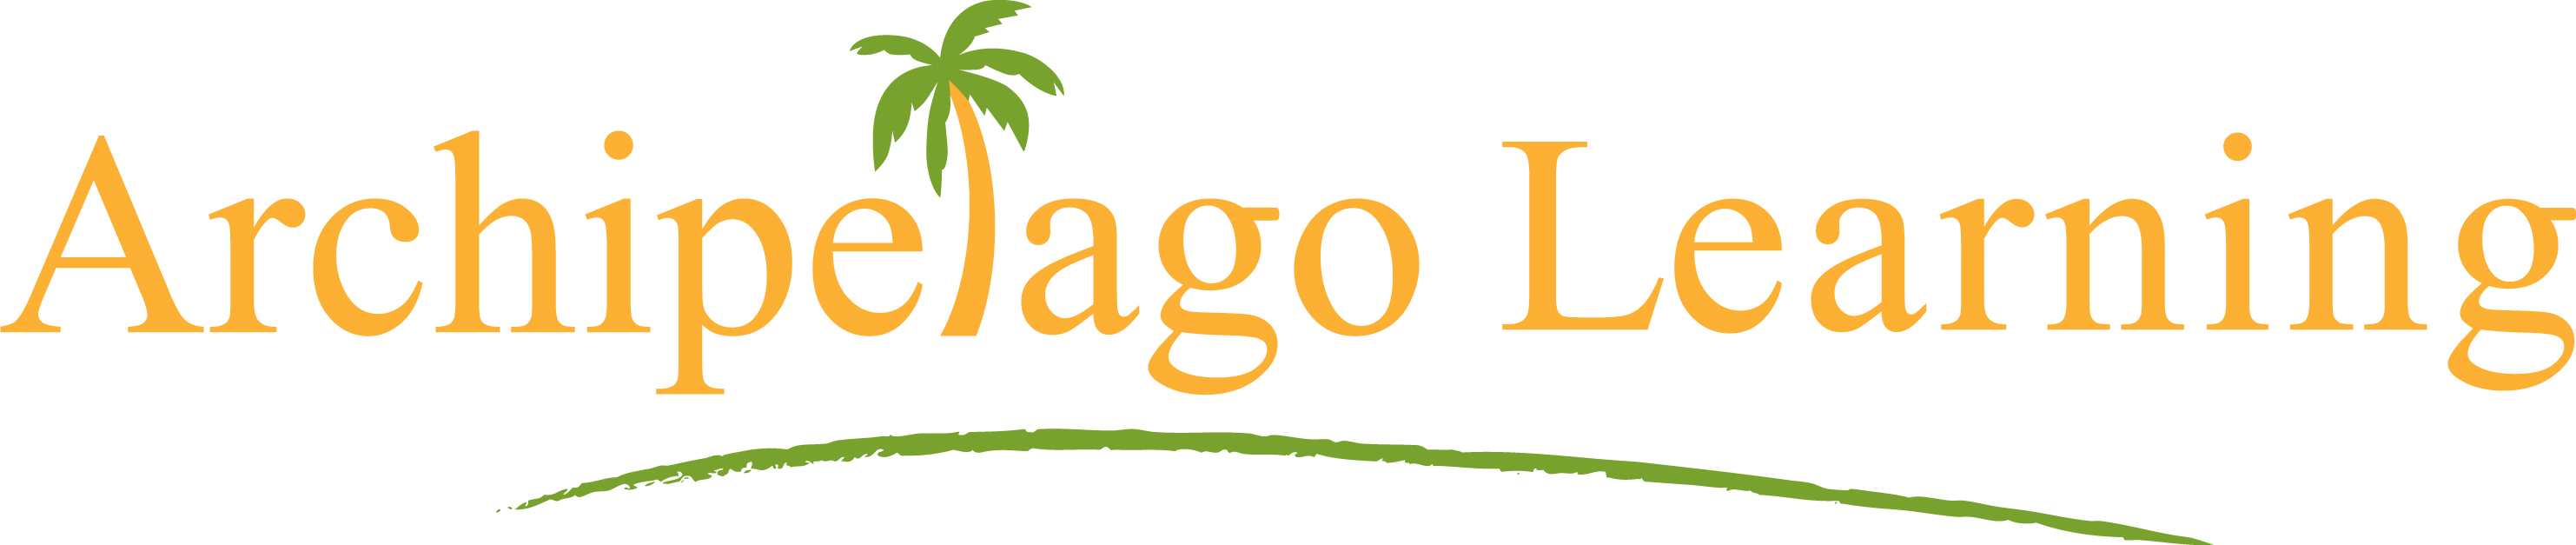 Archipelago Learning Logo